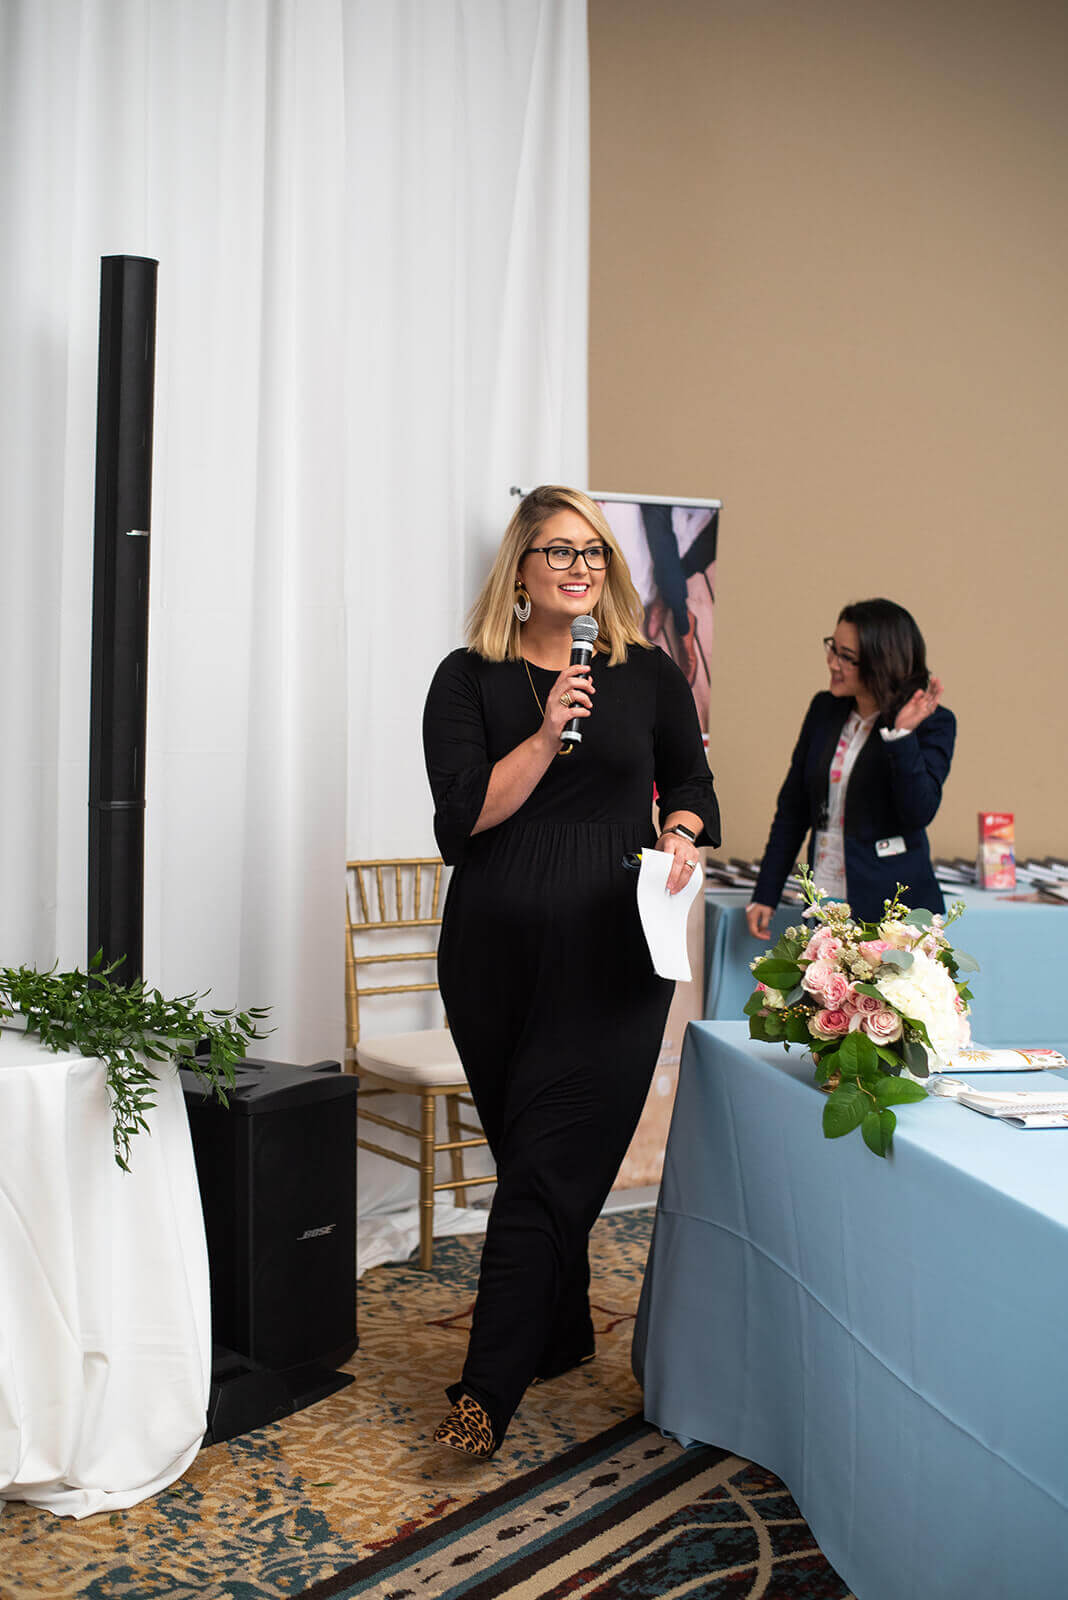 Cathy Nugent of A Hosting Home Speaking at The Bridal Society Annual Conference